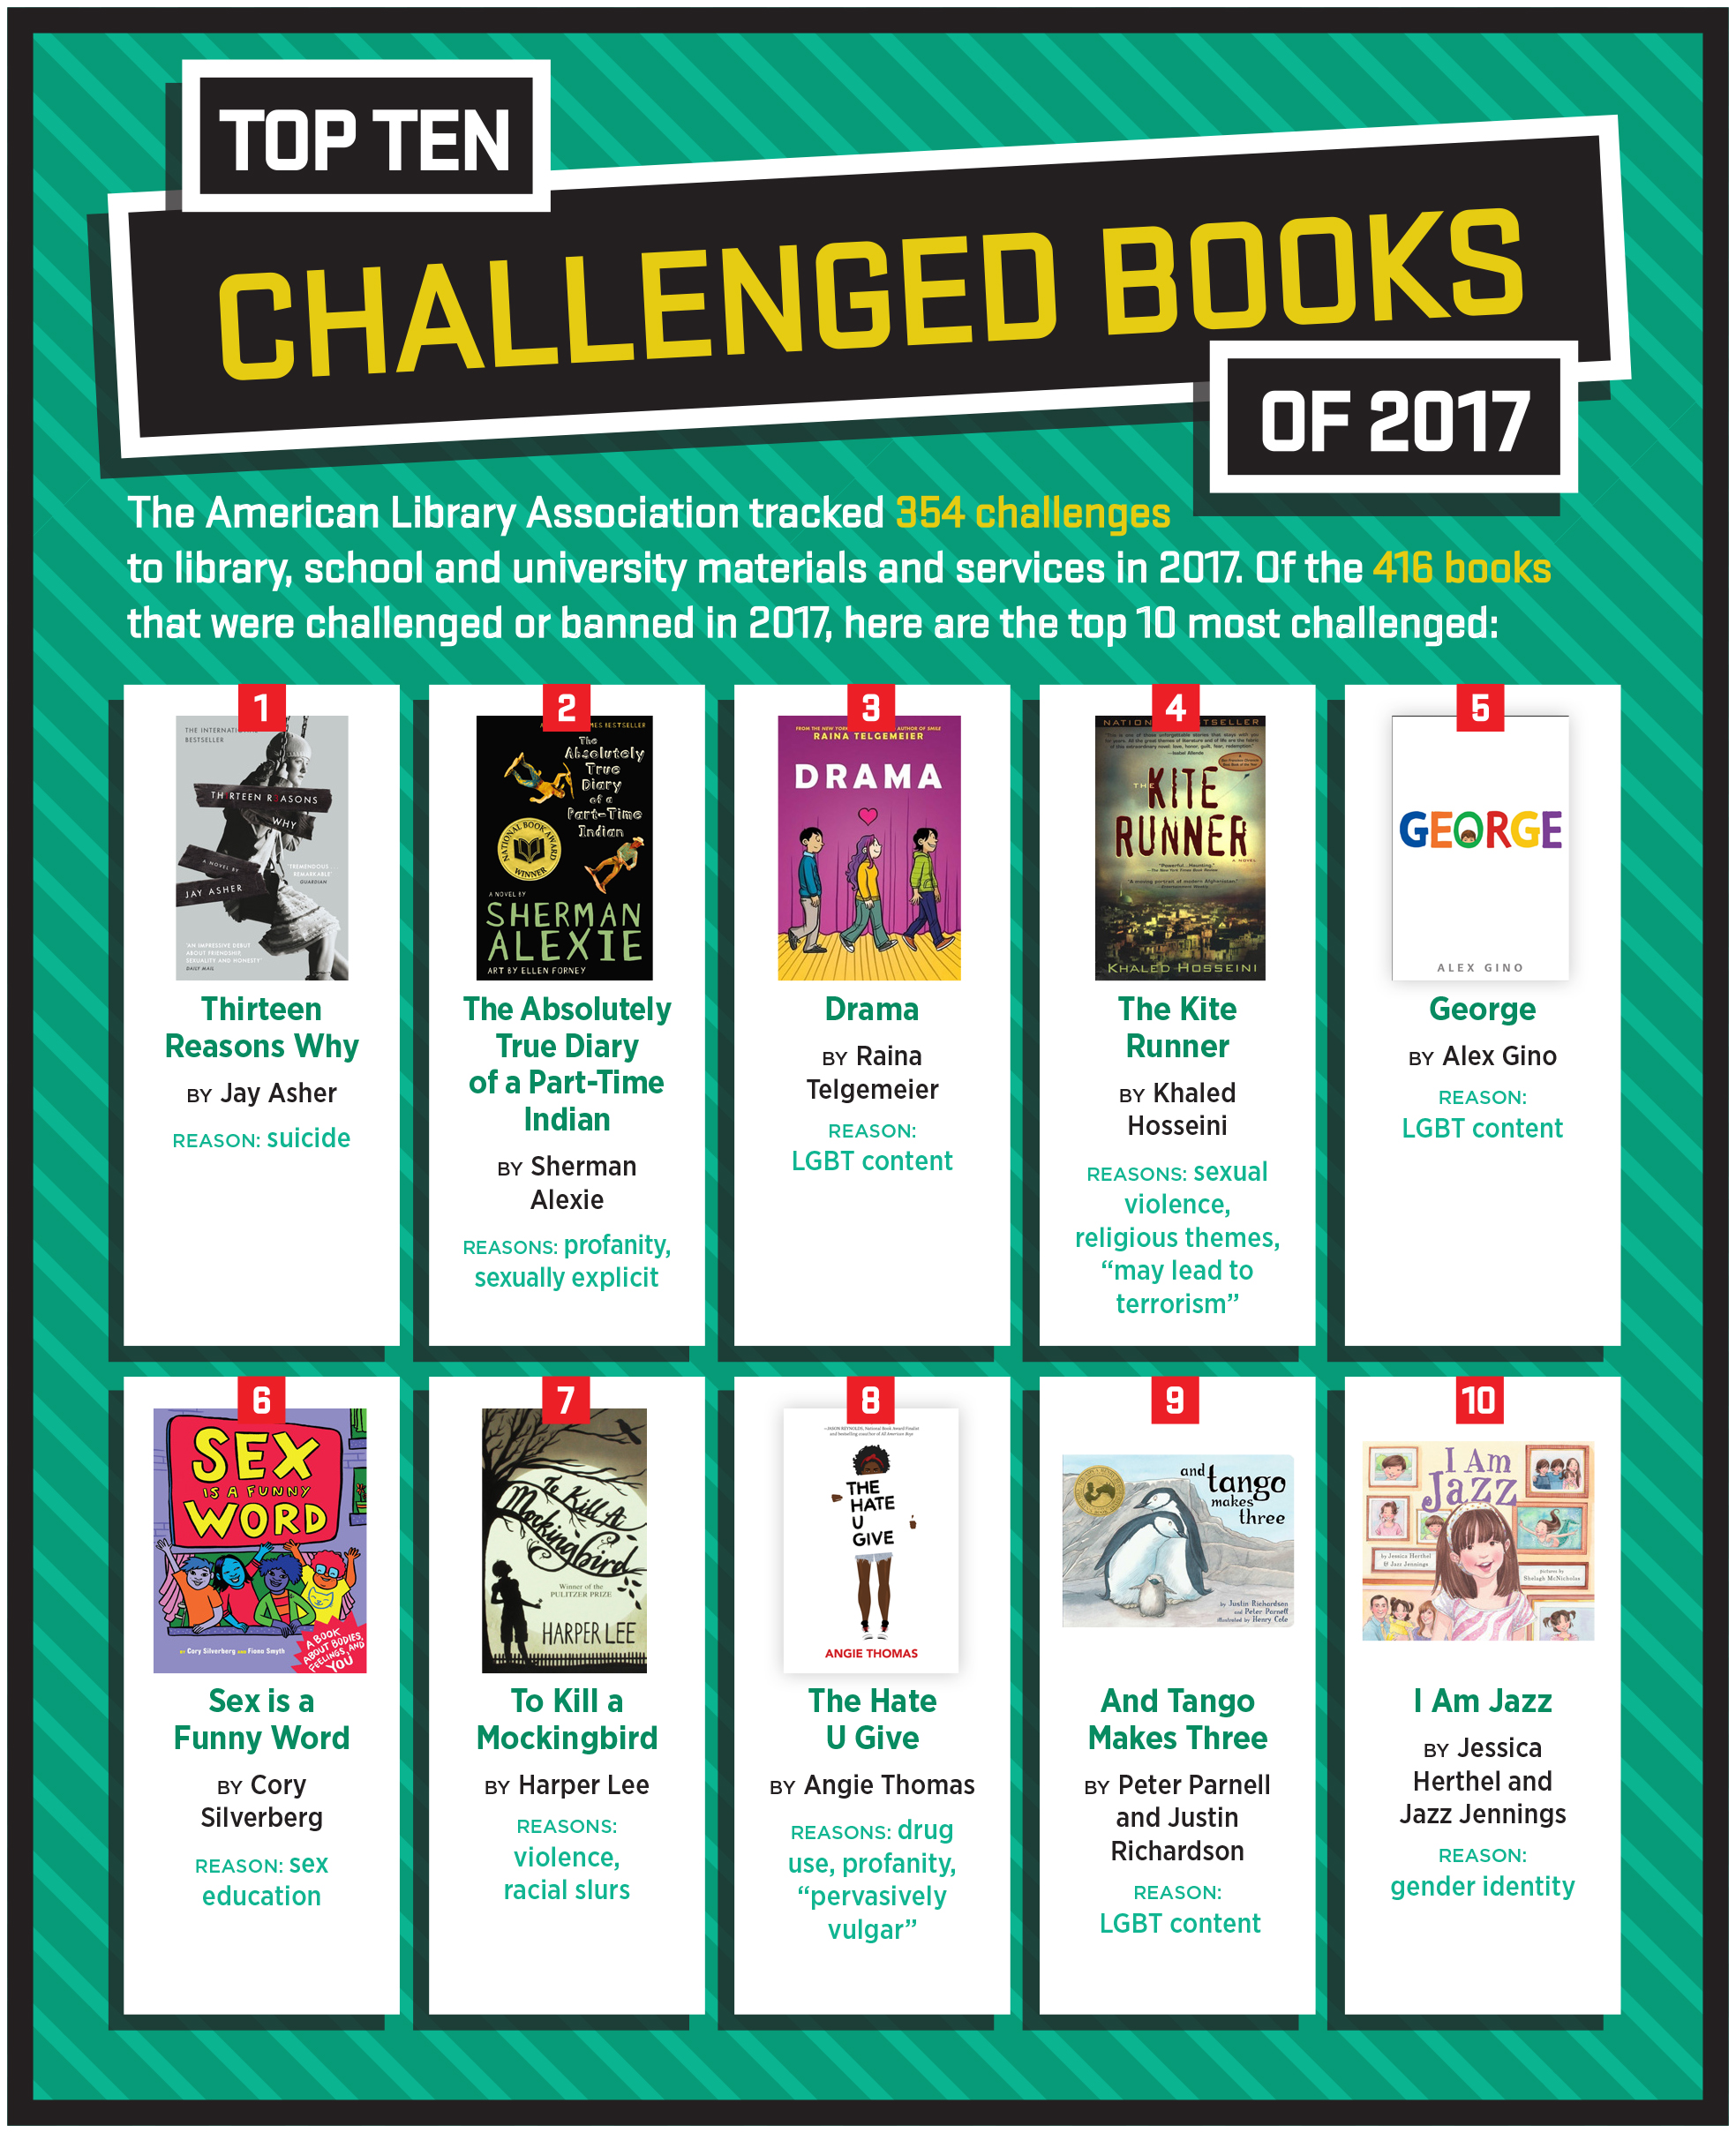 Top 10 Challenged Books of 2017: 1. Thirteen Reasons Why written by Jay Asher, 2. The Absolutely True Diary of a Part-Time Indian written by Sherman Alexie, 3. Drama written and illustrated by Raina Telgemeier, 4. The Kite Runner written by Khaled Hosseini, 5. George written by Alex Gino, 6. Sex is a Funny Word written by Cory Silverberg and illustrated by Fiona Smyth, 7. To Kill a Mockingbird written by Harper Lee, 8. The Hate U Give written by Angie Thomas, 9. And Tango Makes Three written by Peter Parnell and Justin Richardson and illustrated by Henry Cole, 10. I Am Jazz written by Jessica Herthel and Jazz Jennings and illustrated by Shelagh McNicholas